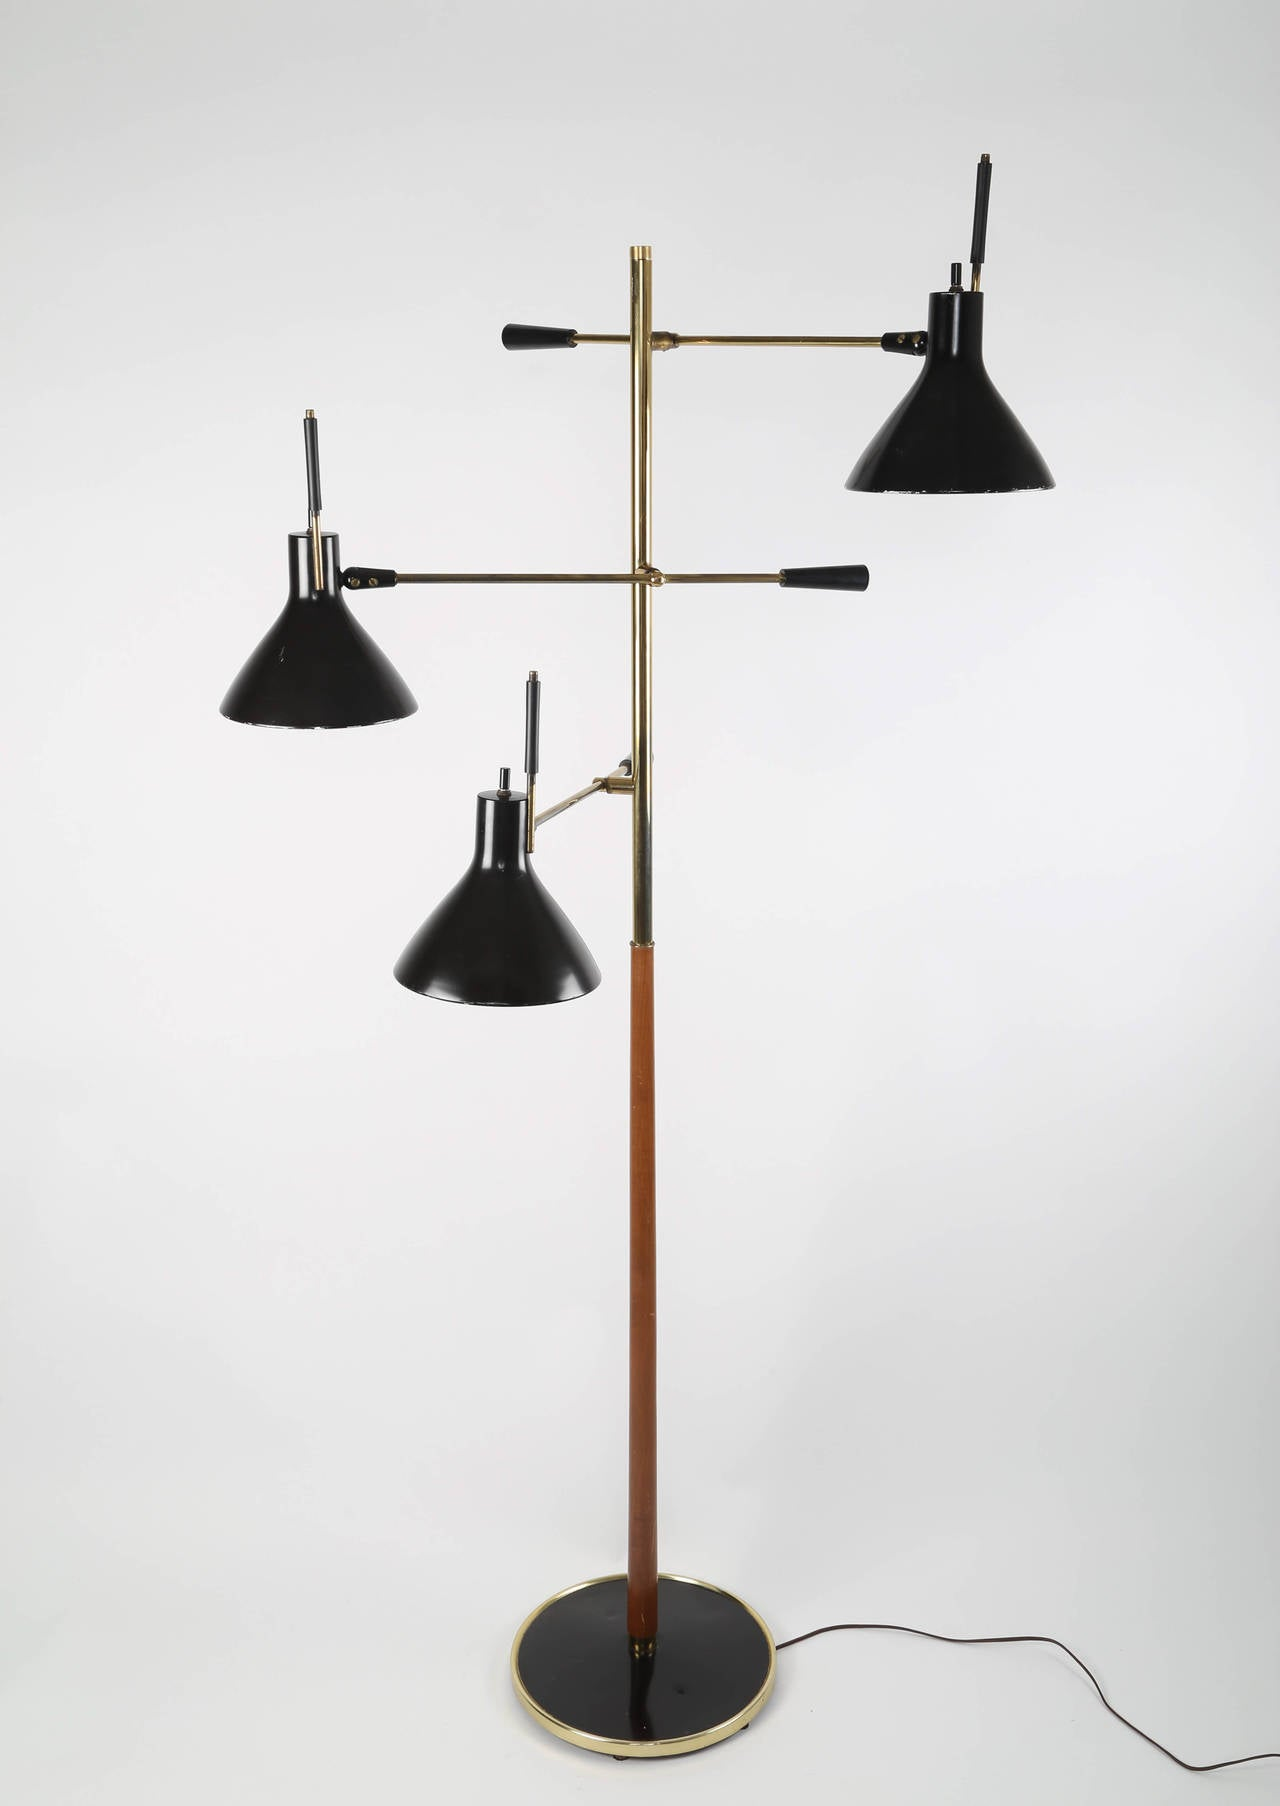 Gerald thurston for lightolier three arm floor lamp at 1stdibs gerald thurston for lightolier three arm floor lamp 3 geotapseo Image collections